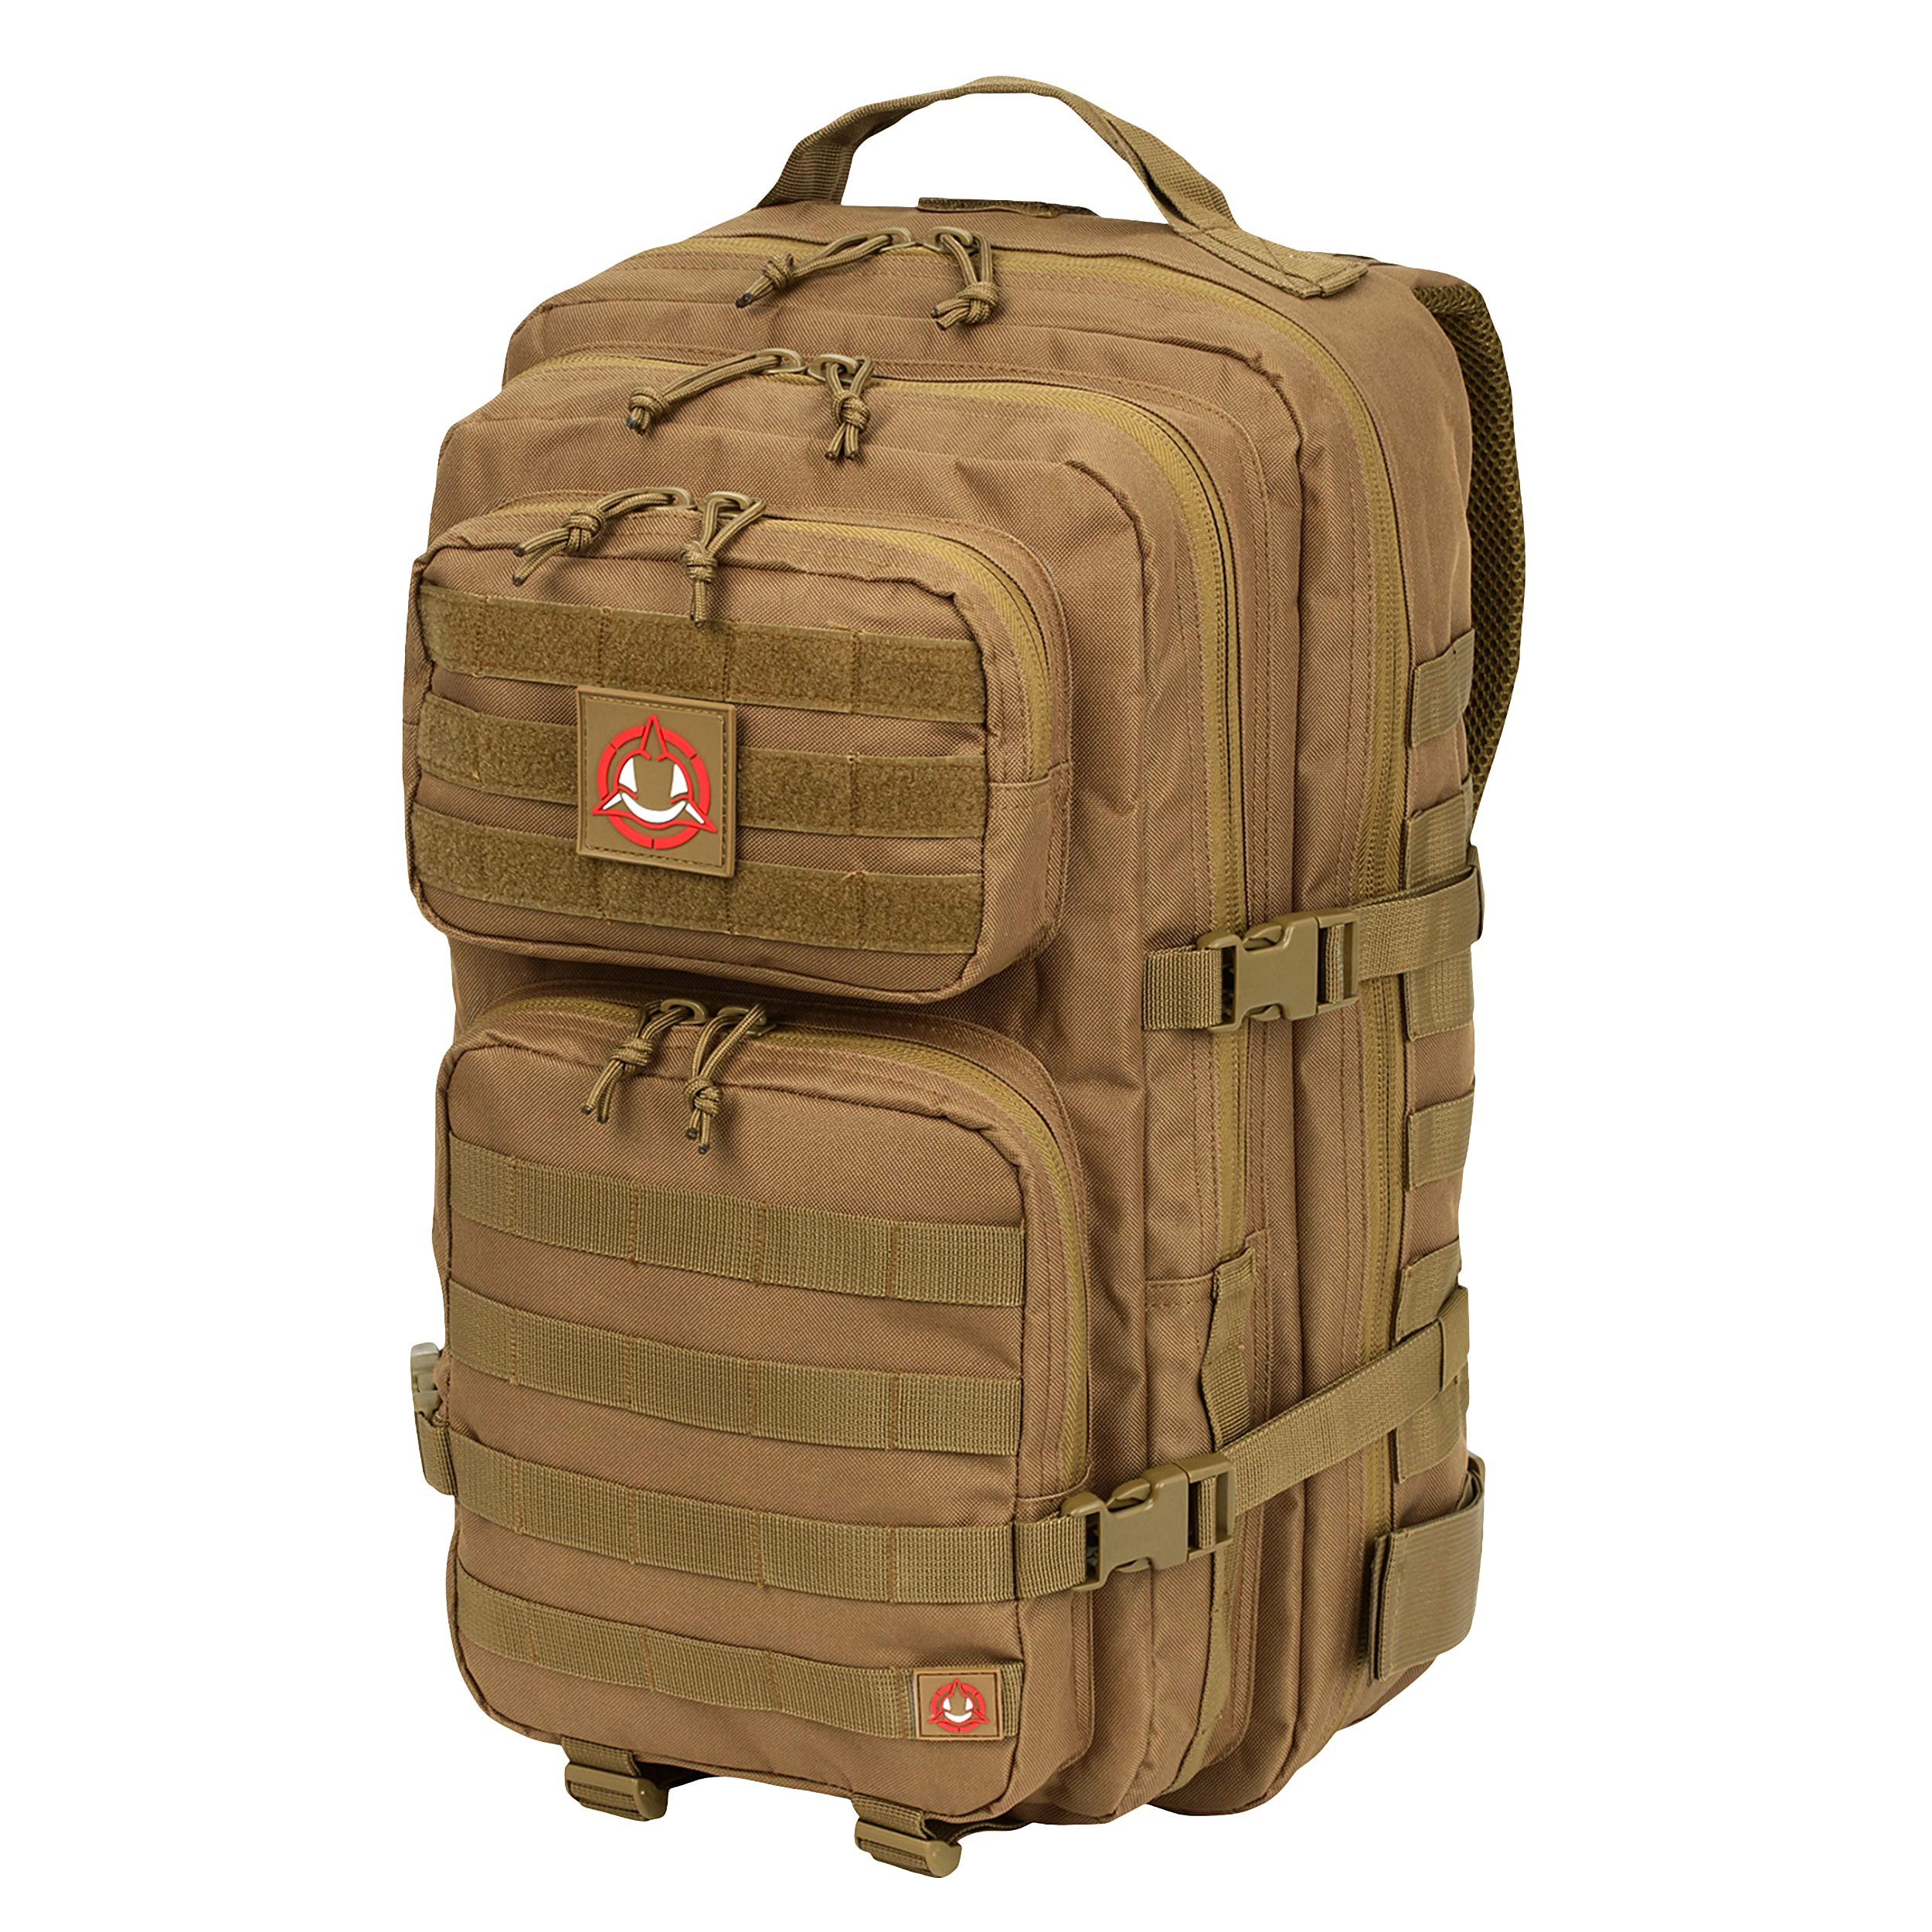 1af00c887b Orca Tactical Backpack Salish 40L MOLLE Large 3-Day Army Military Survival  Bug Out Bag